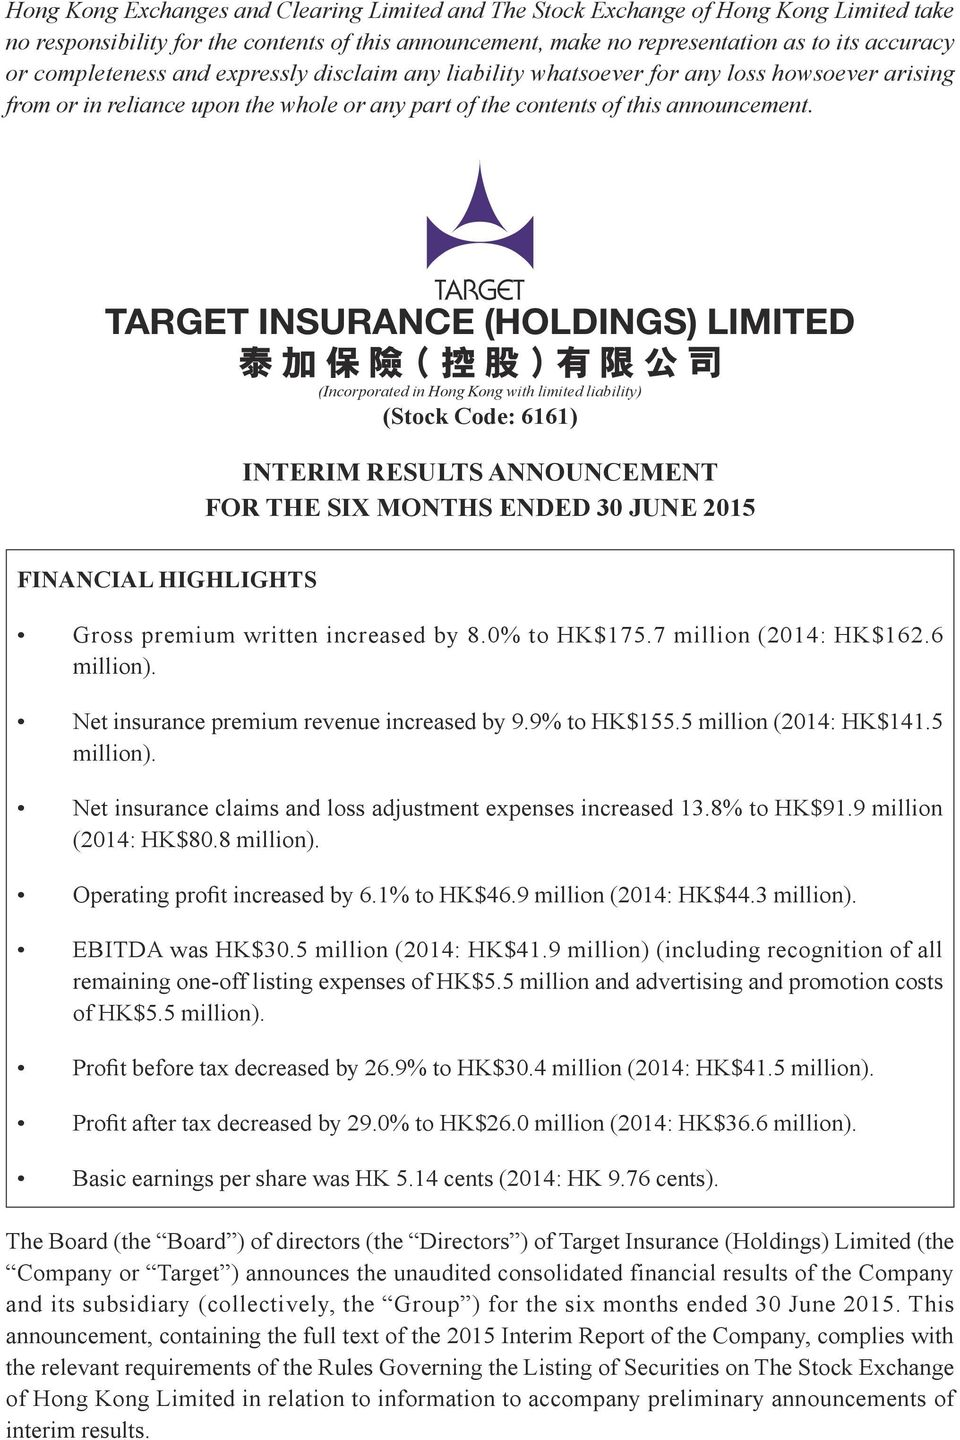 TARGET INSURANCE (HOLDINGS) LIMITED 泰 加 保 險 ( 控 股 ) 有 限 公 司 (Incorporated in Hong Kong with limited liability) (Stock Code: 6161) INTERIM RESULTS ANNOUNCEMENT FOR THE SIX MONTHS ENDED 30 JUNE 2015